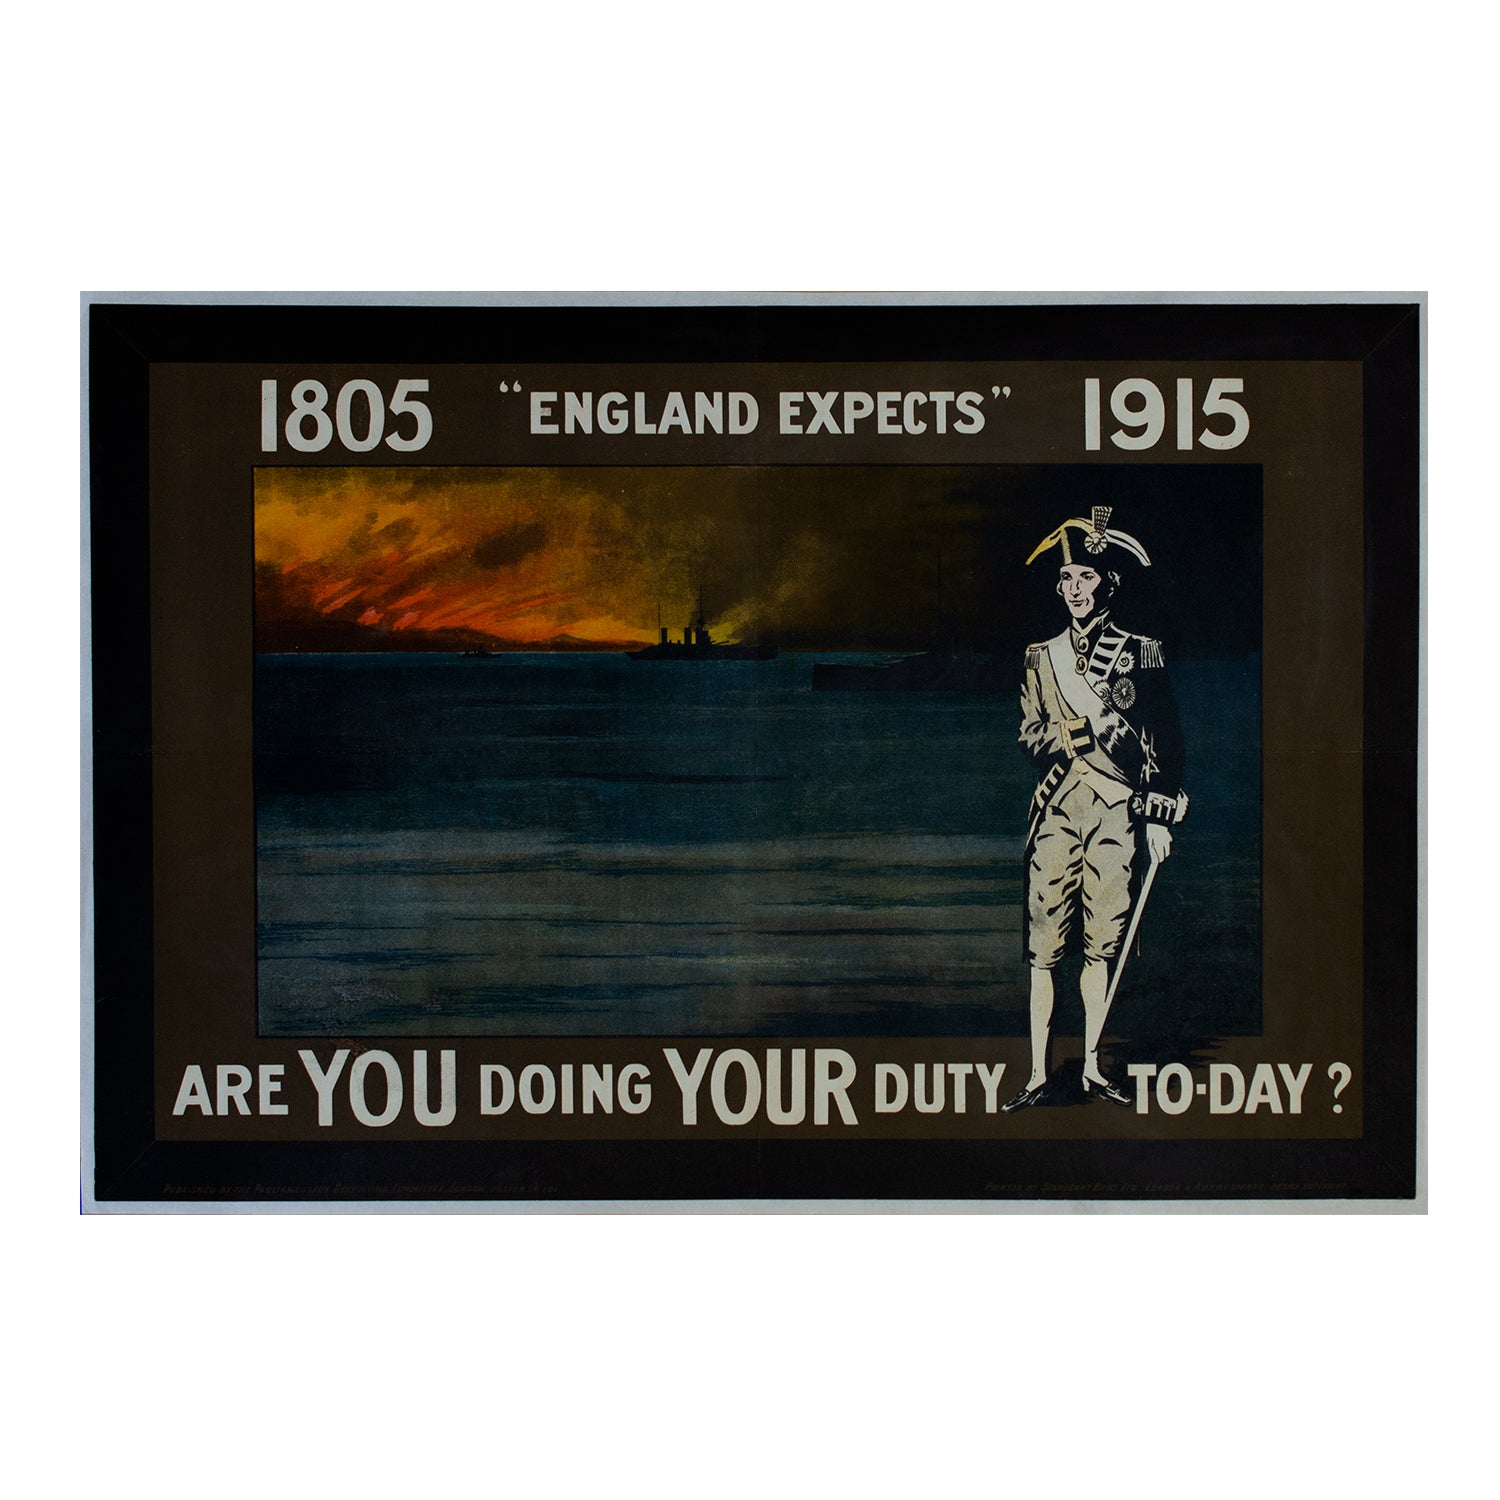 1805 England Expects 1915. Are YOU doing YOUR duty to-day?